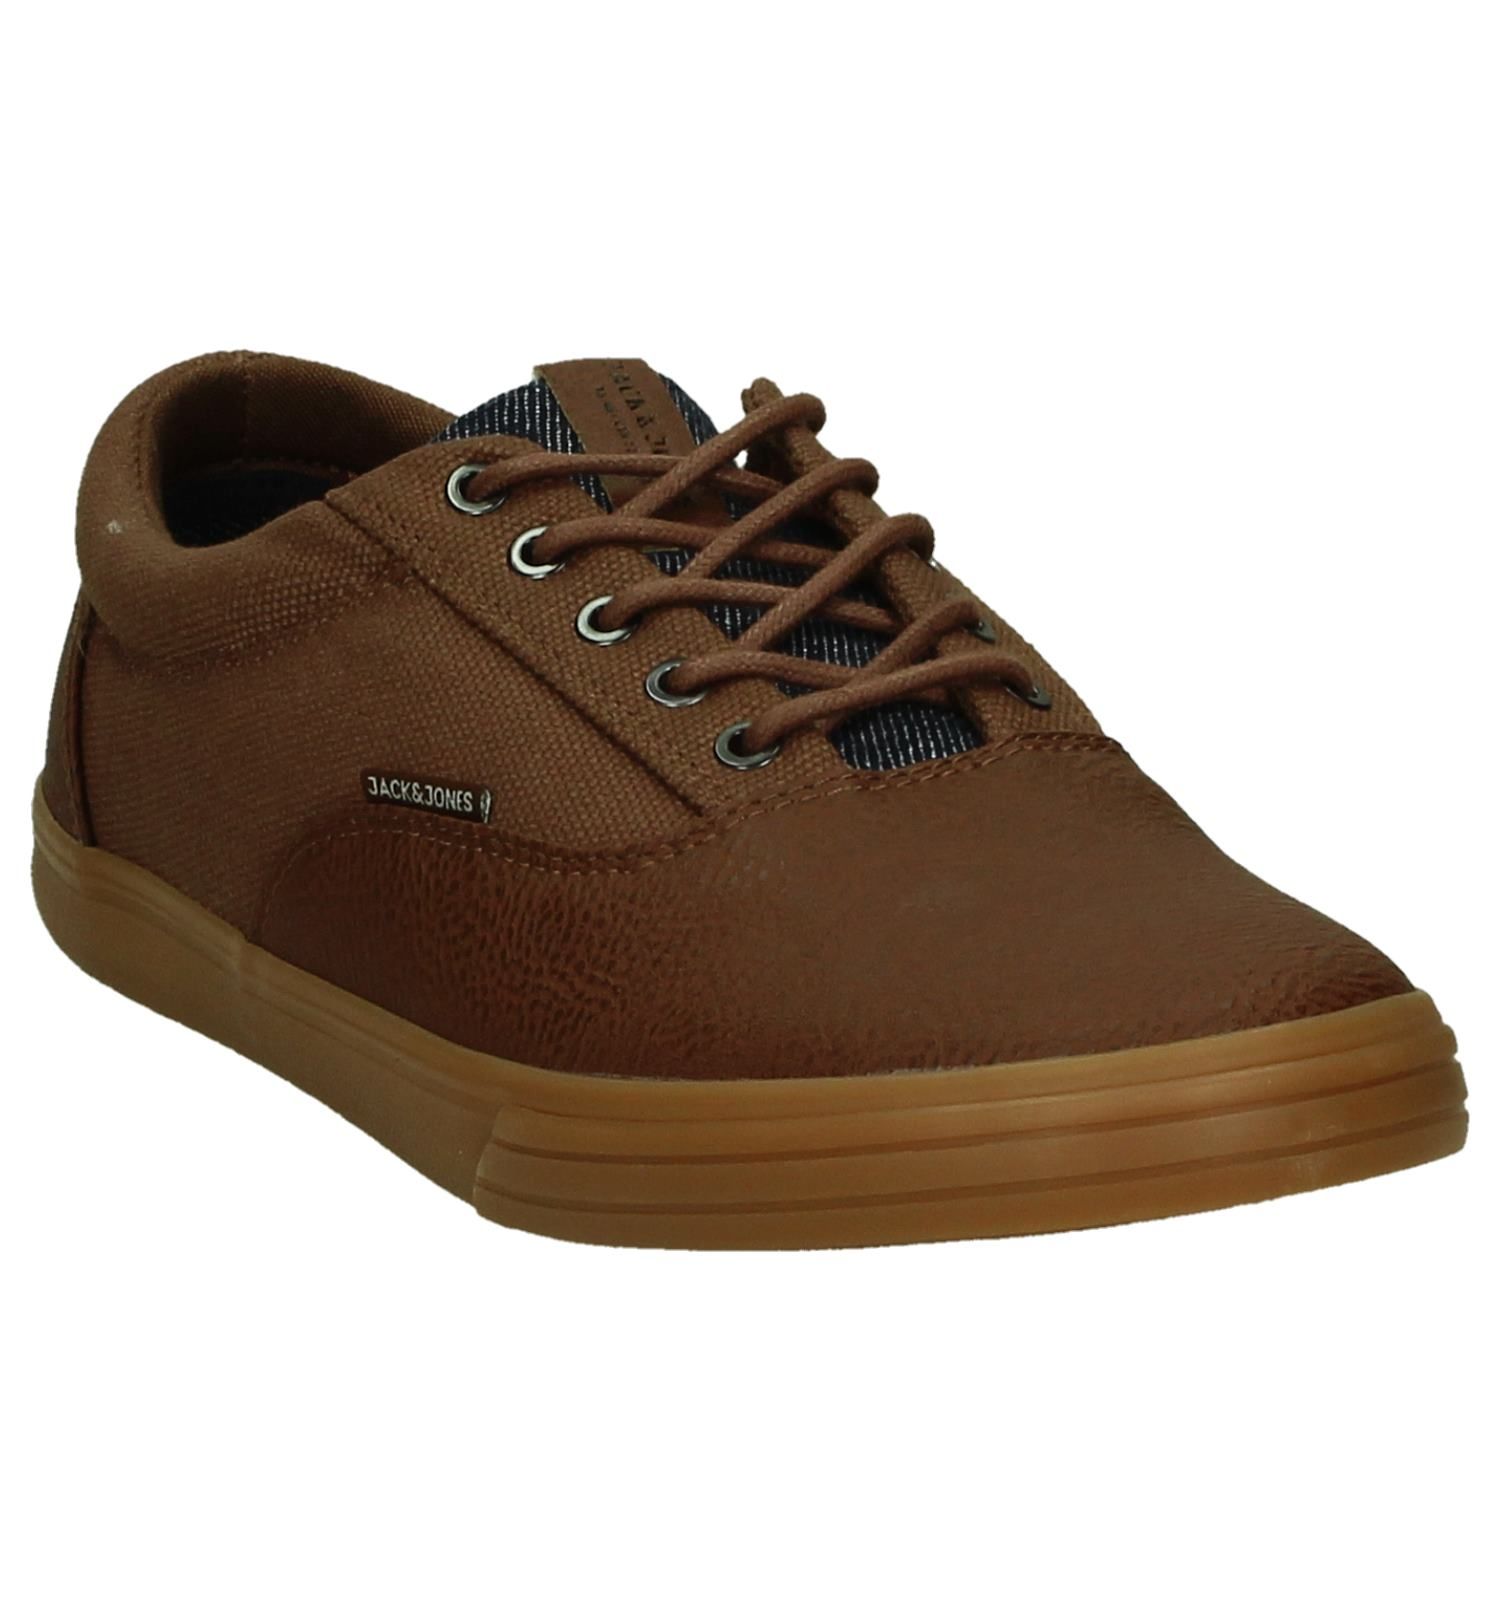 Cognac Mix Jackamp; Veterschoenen Jones Casual Vision Canvas rBWxCoed